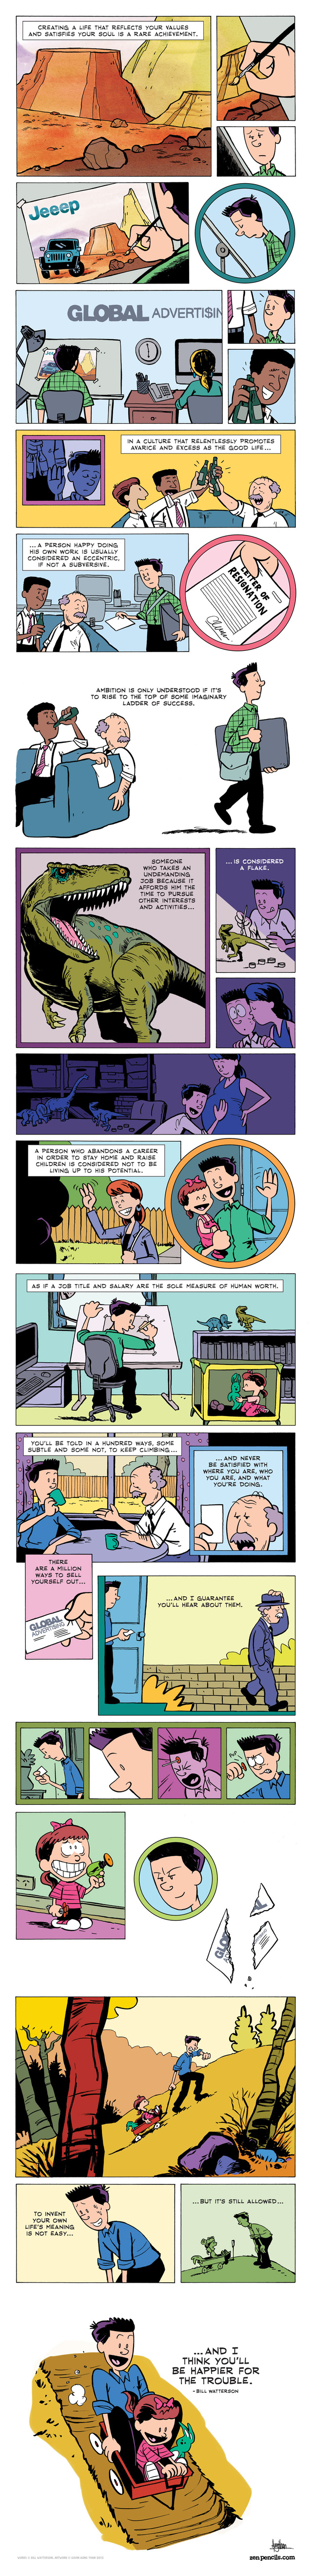 Comic Tribute to Bill Watterson